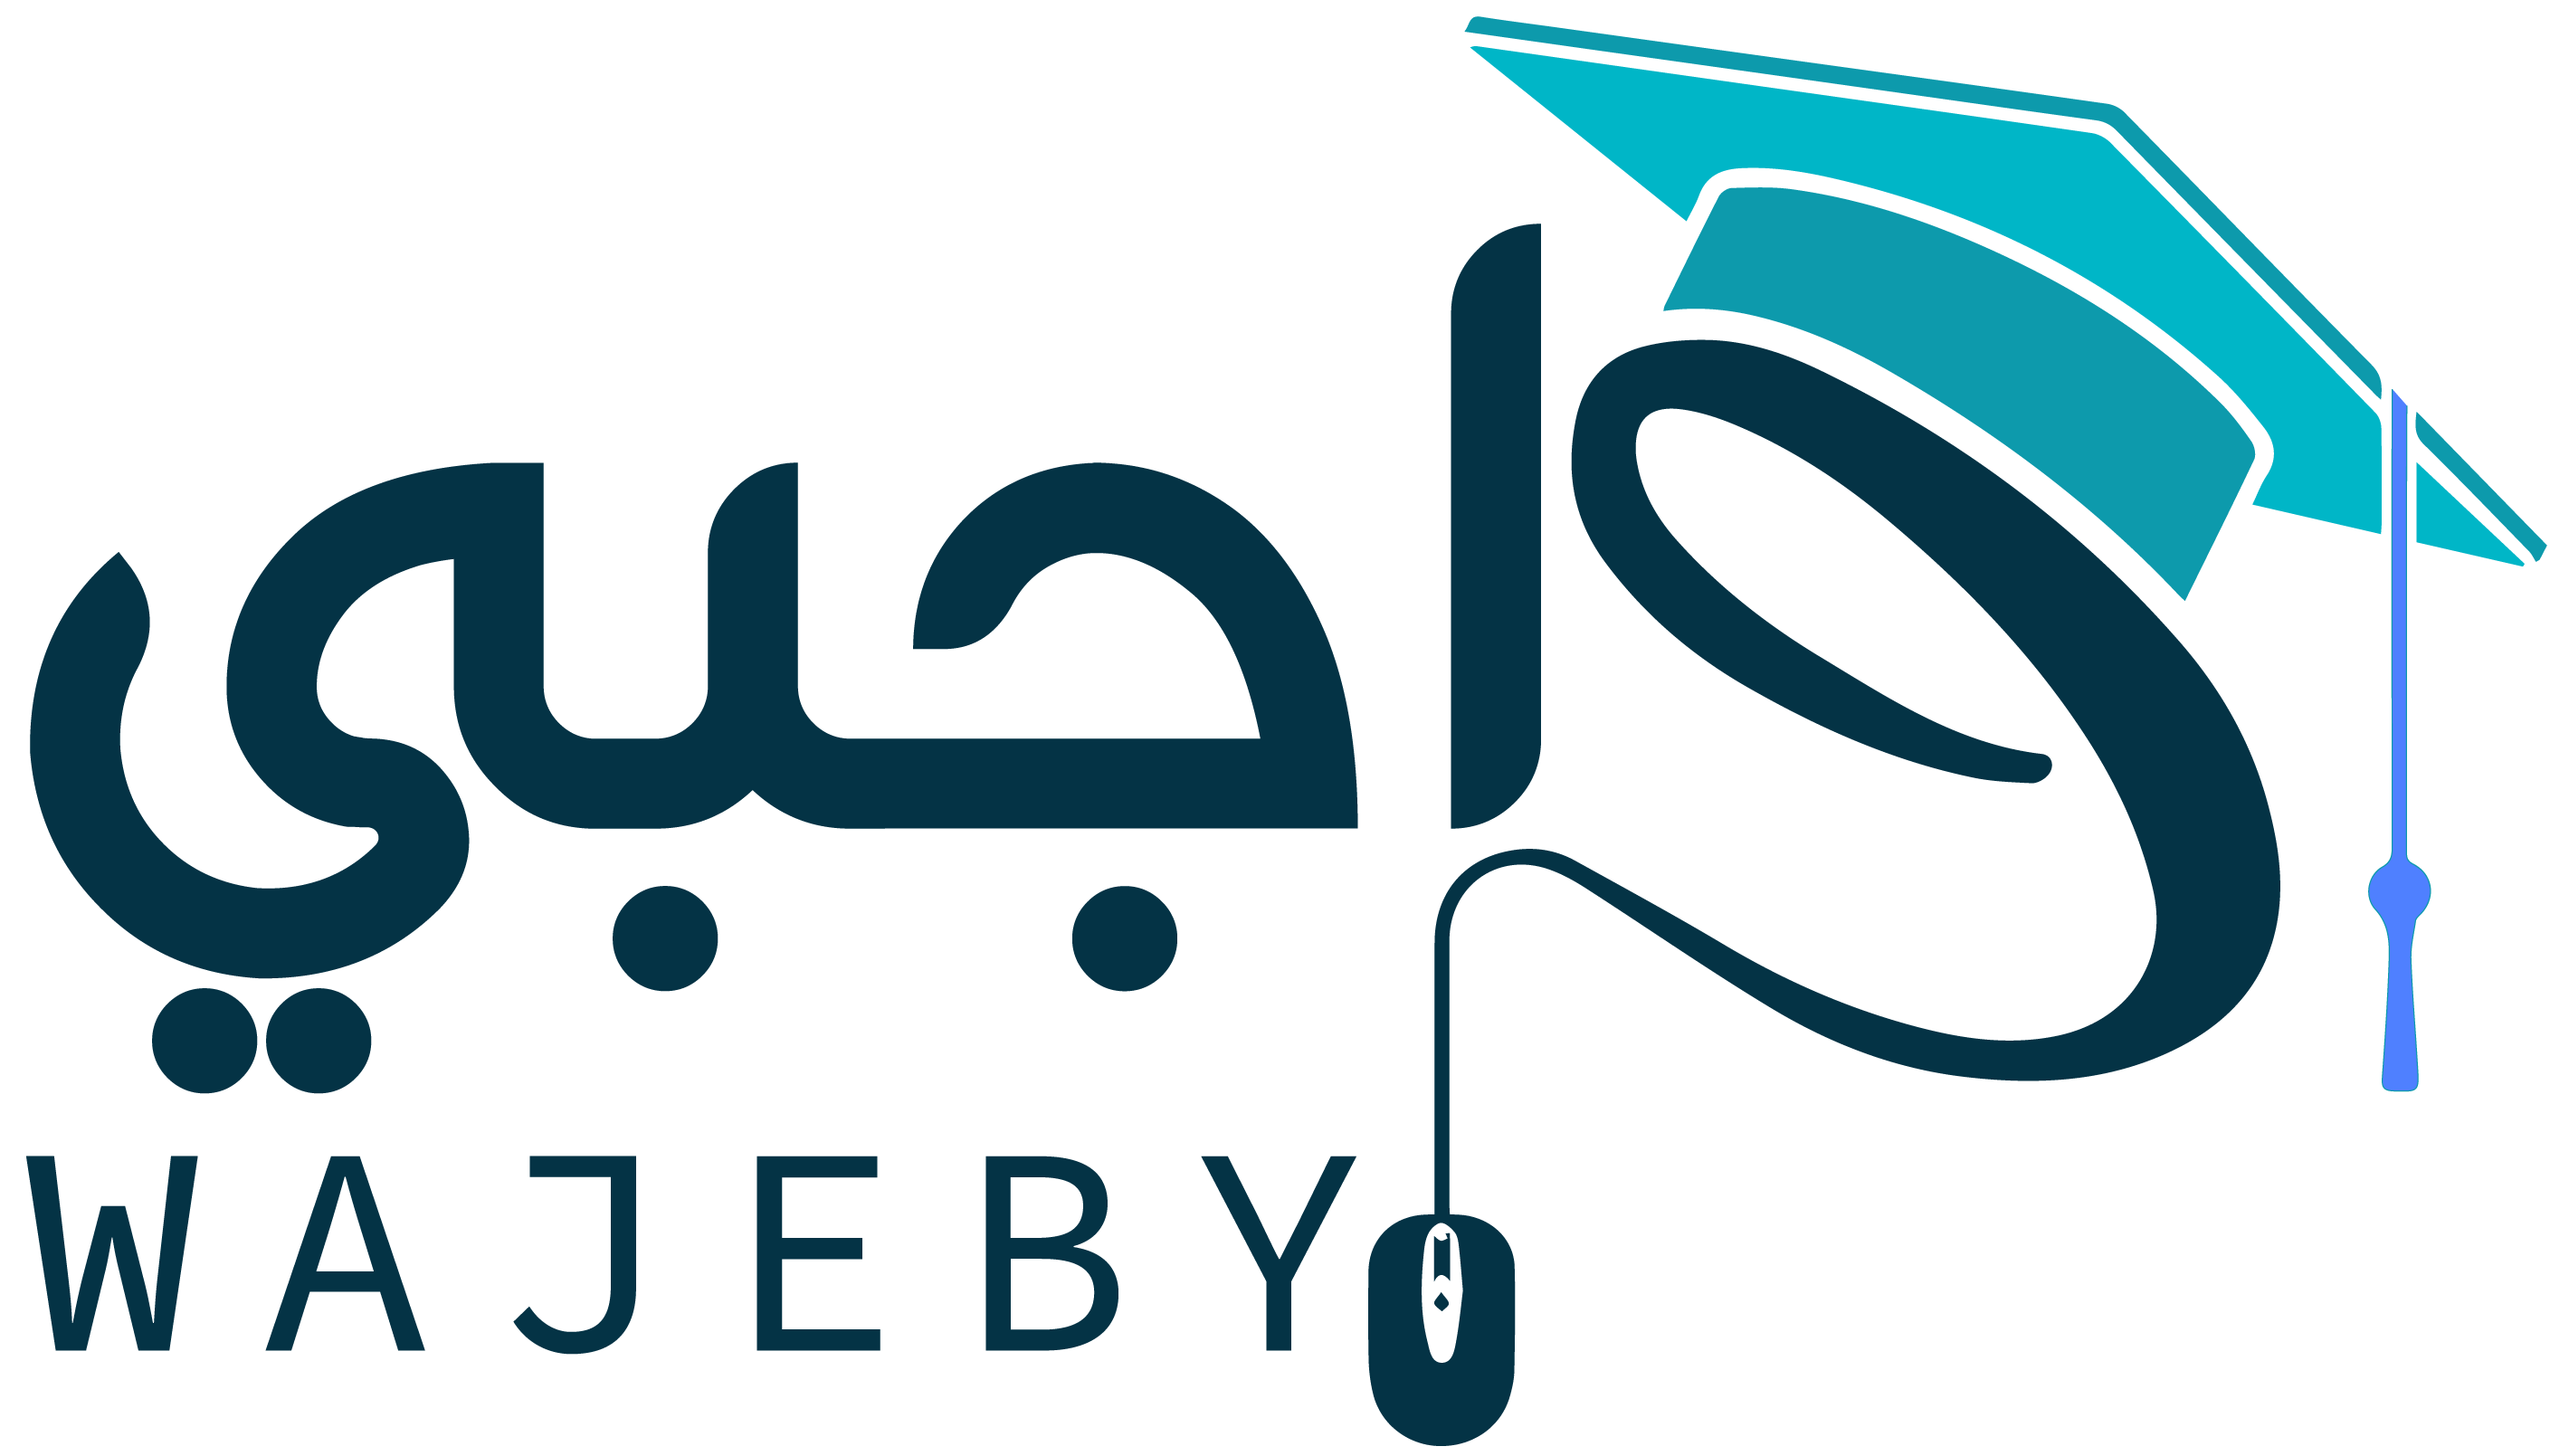 About Logo